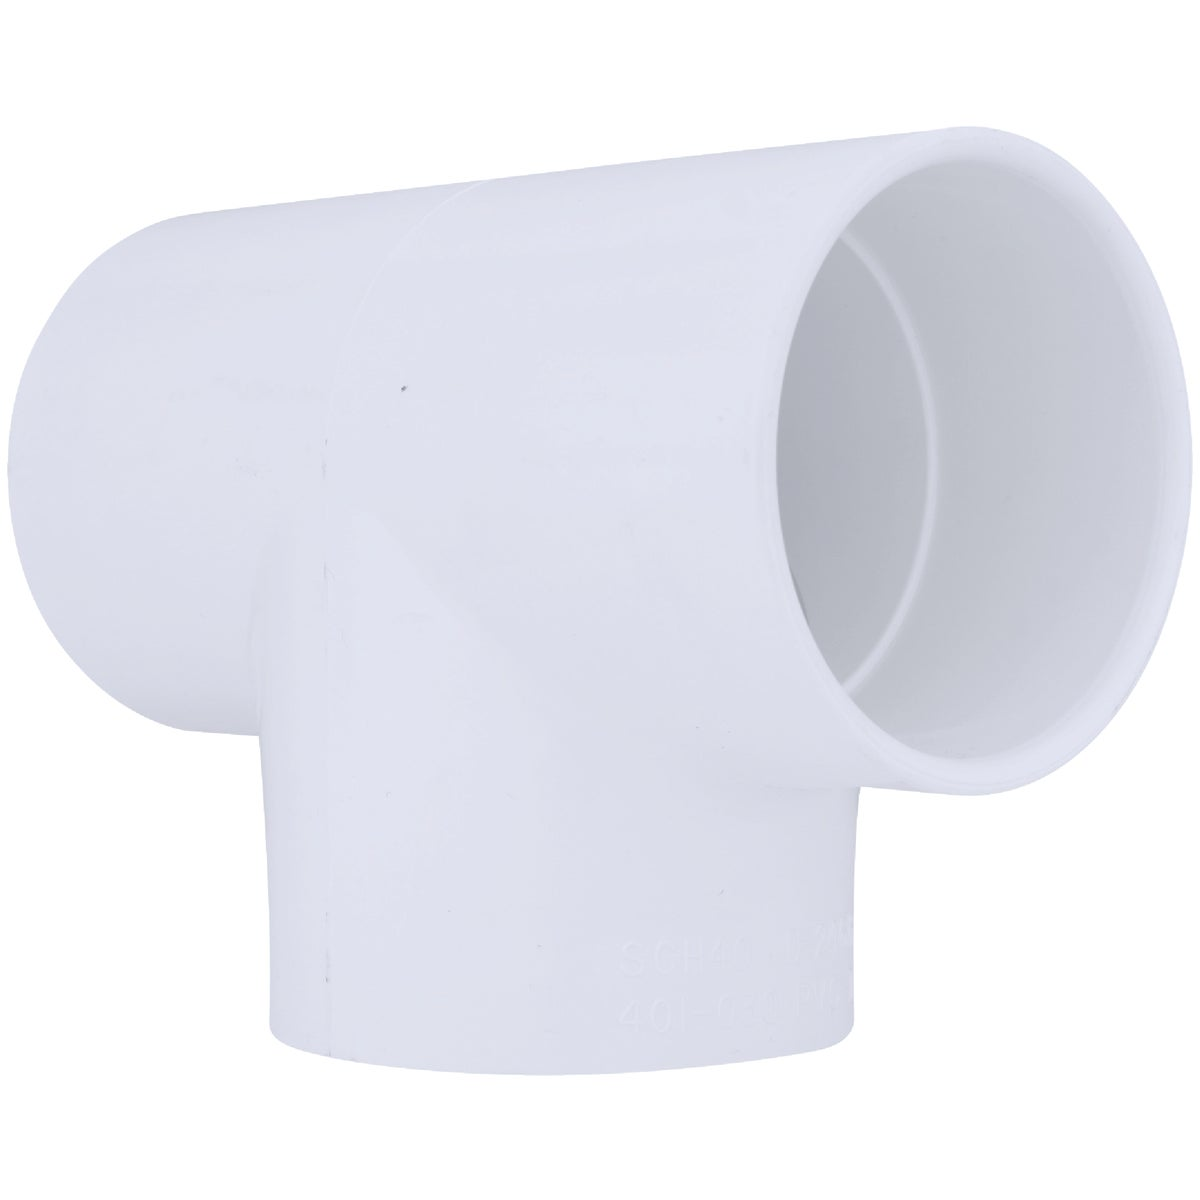 "3"" SCH40 PVC TEE - 31430 by Genova Inc"